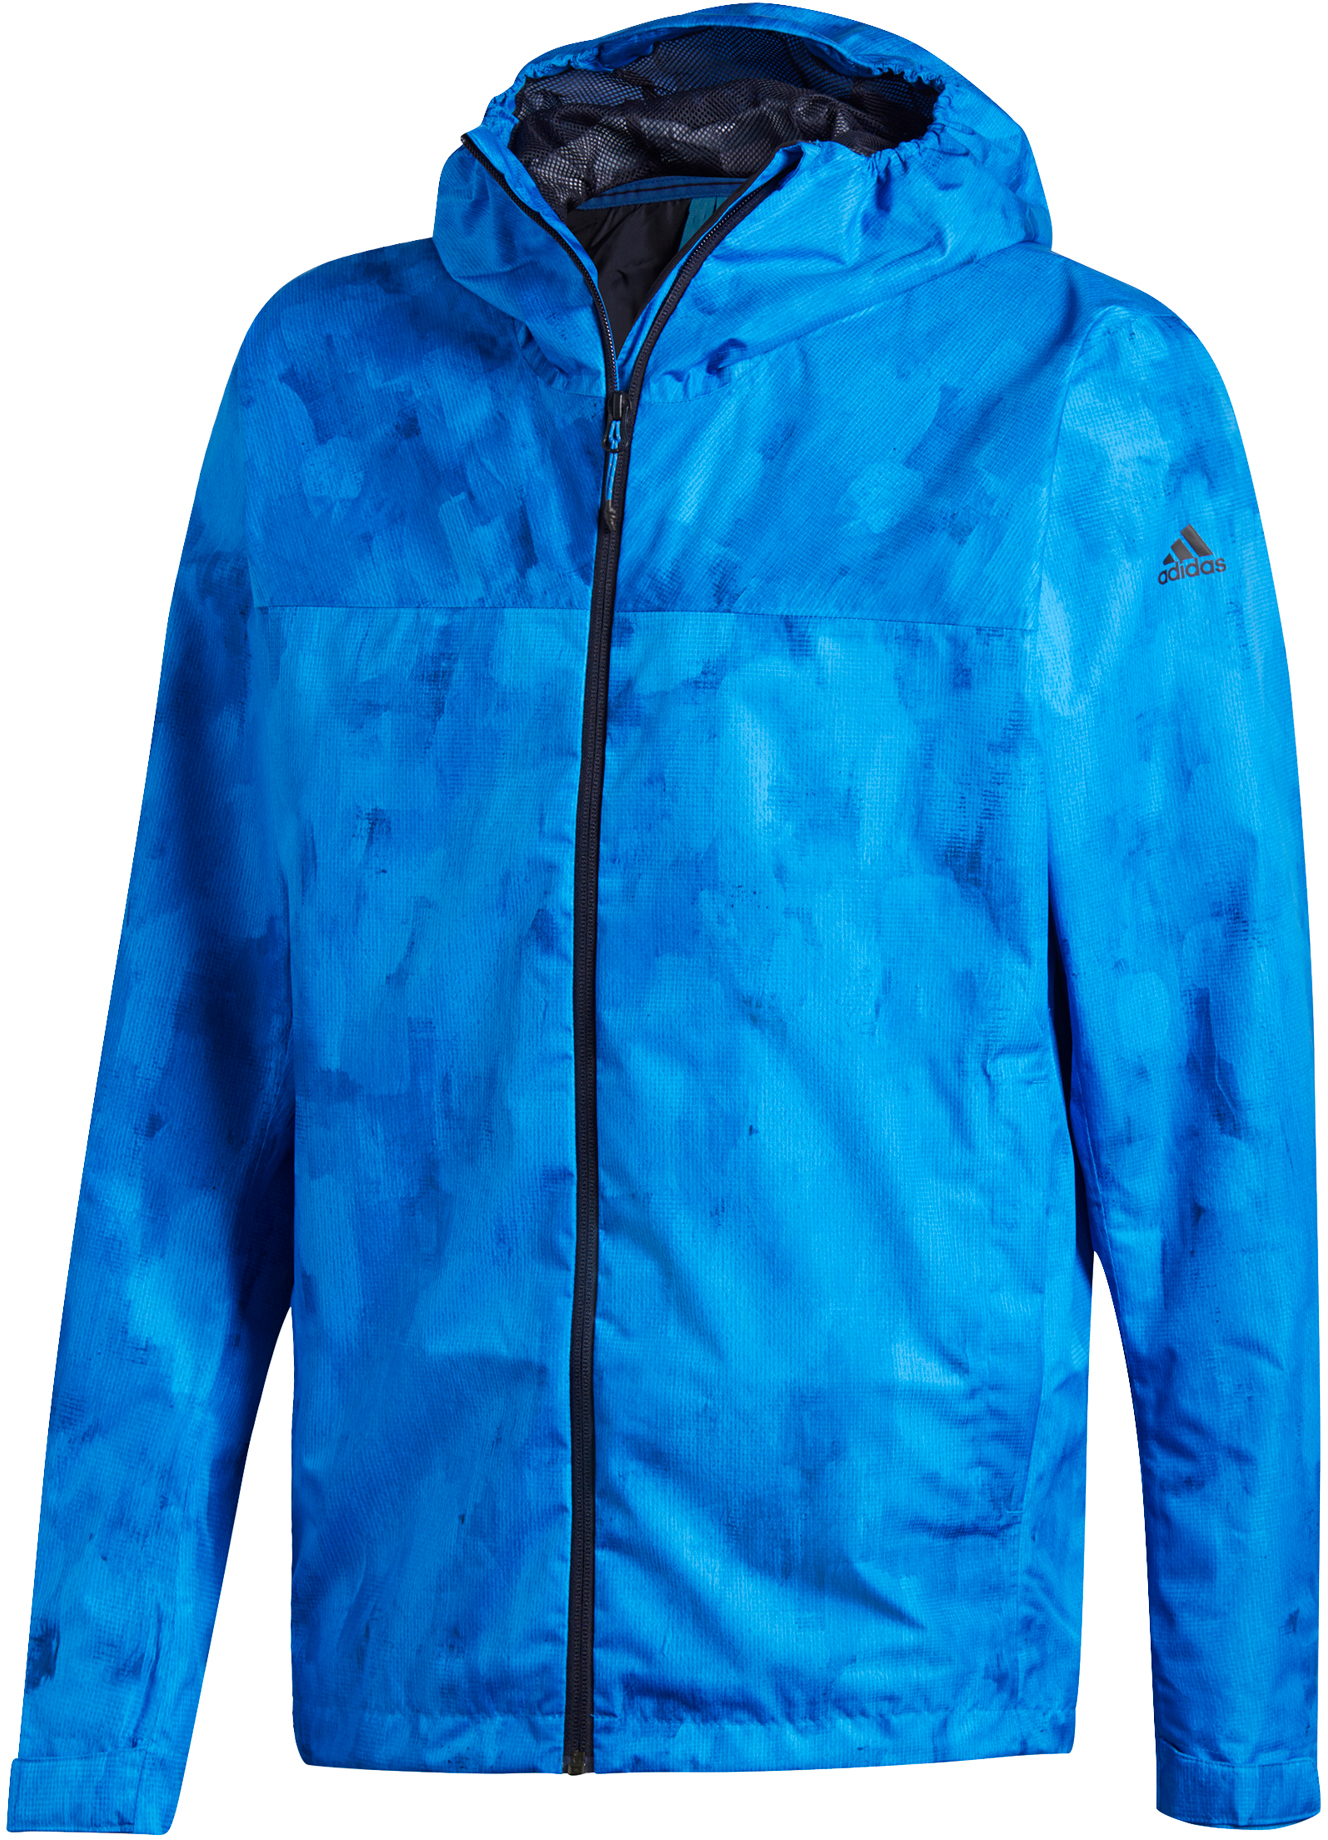 Gear Review: the Adidas Wandertag Jacket